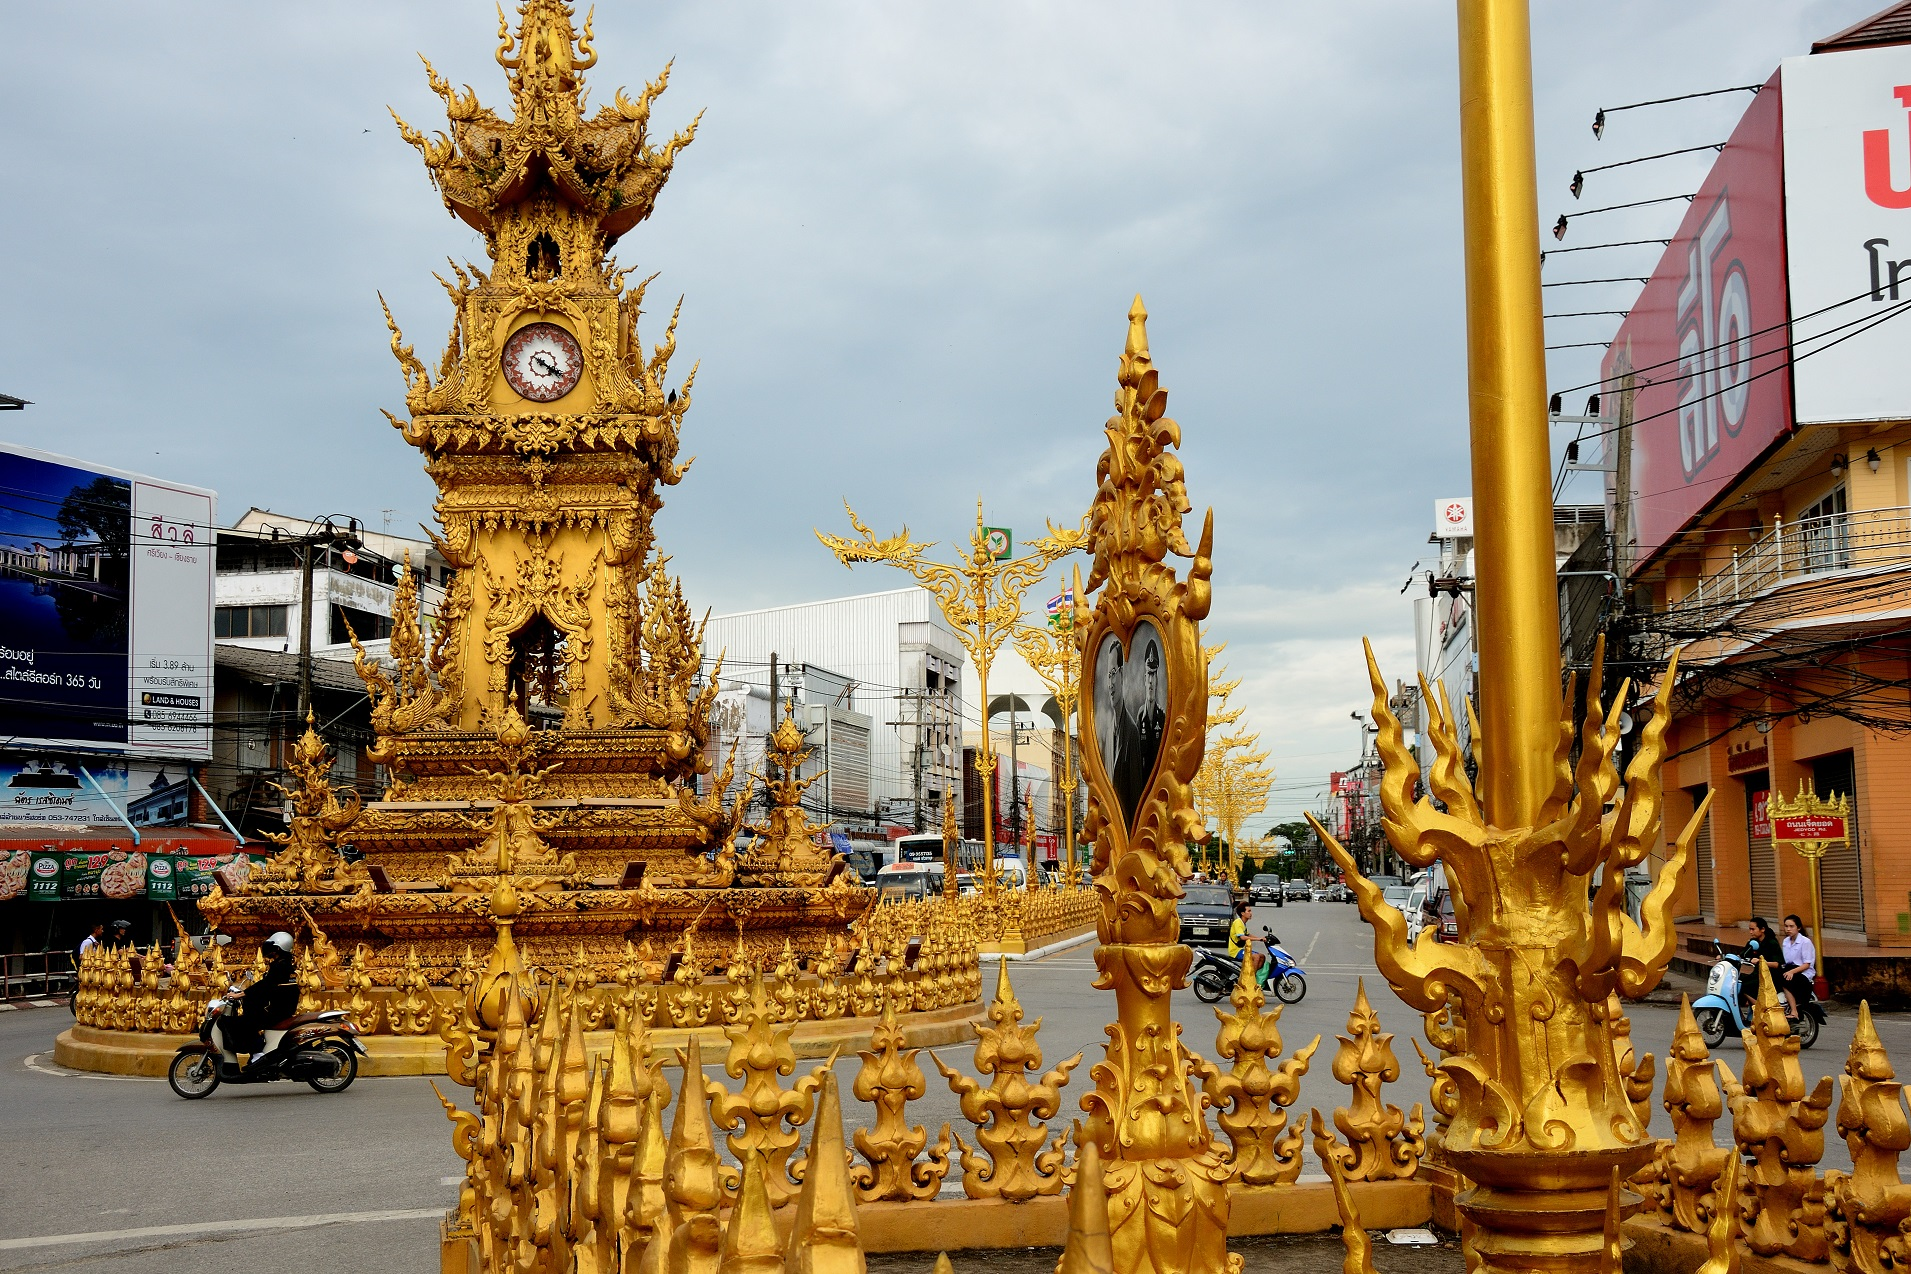 It may be a bit tacky for European eyes but no doubt the Clock Tower in Chiang Rai is a unique sight!